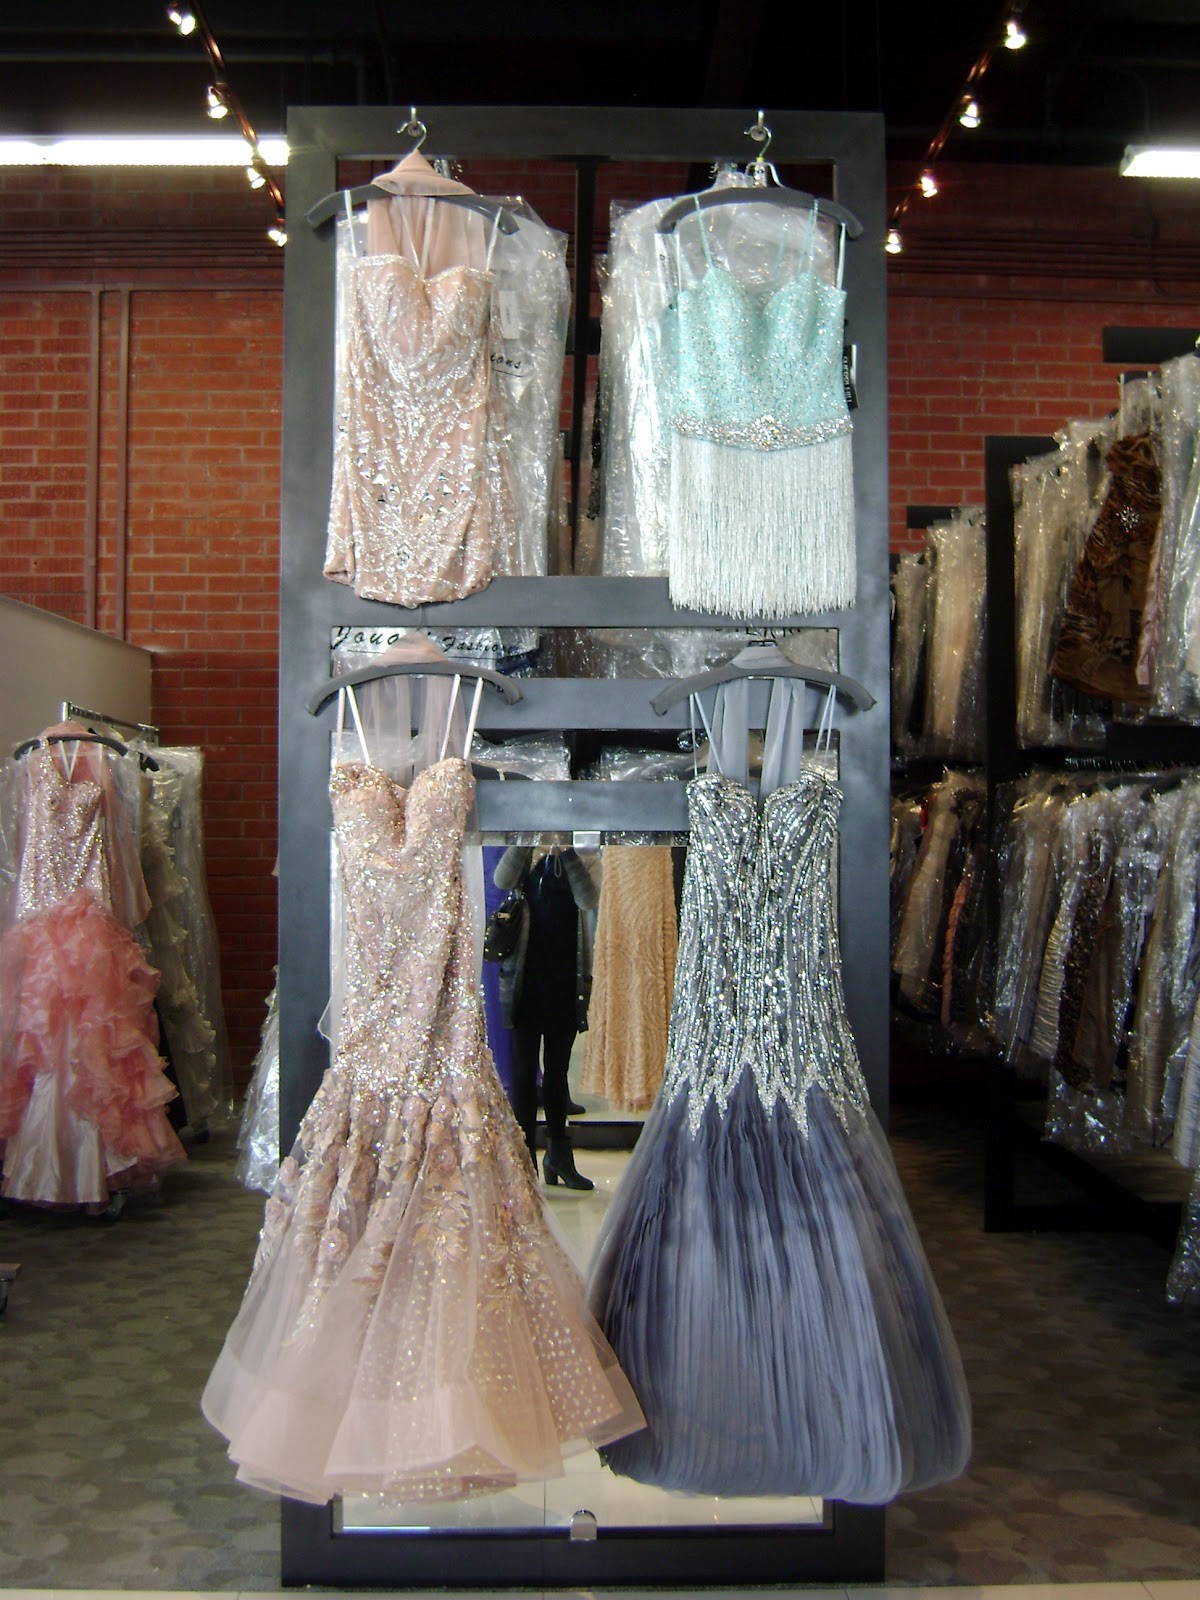 Prom Dresses: Prom Dresses Garment District Los Angeles